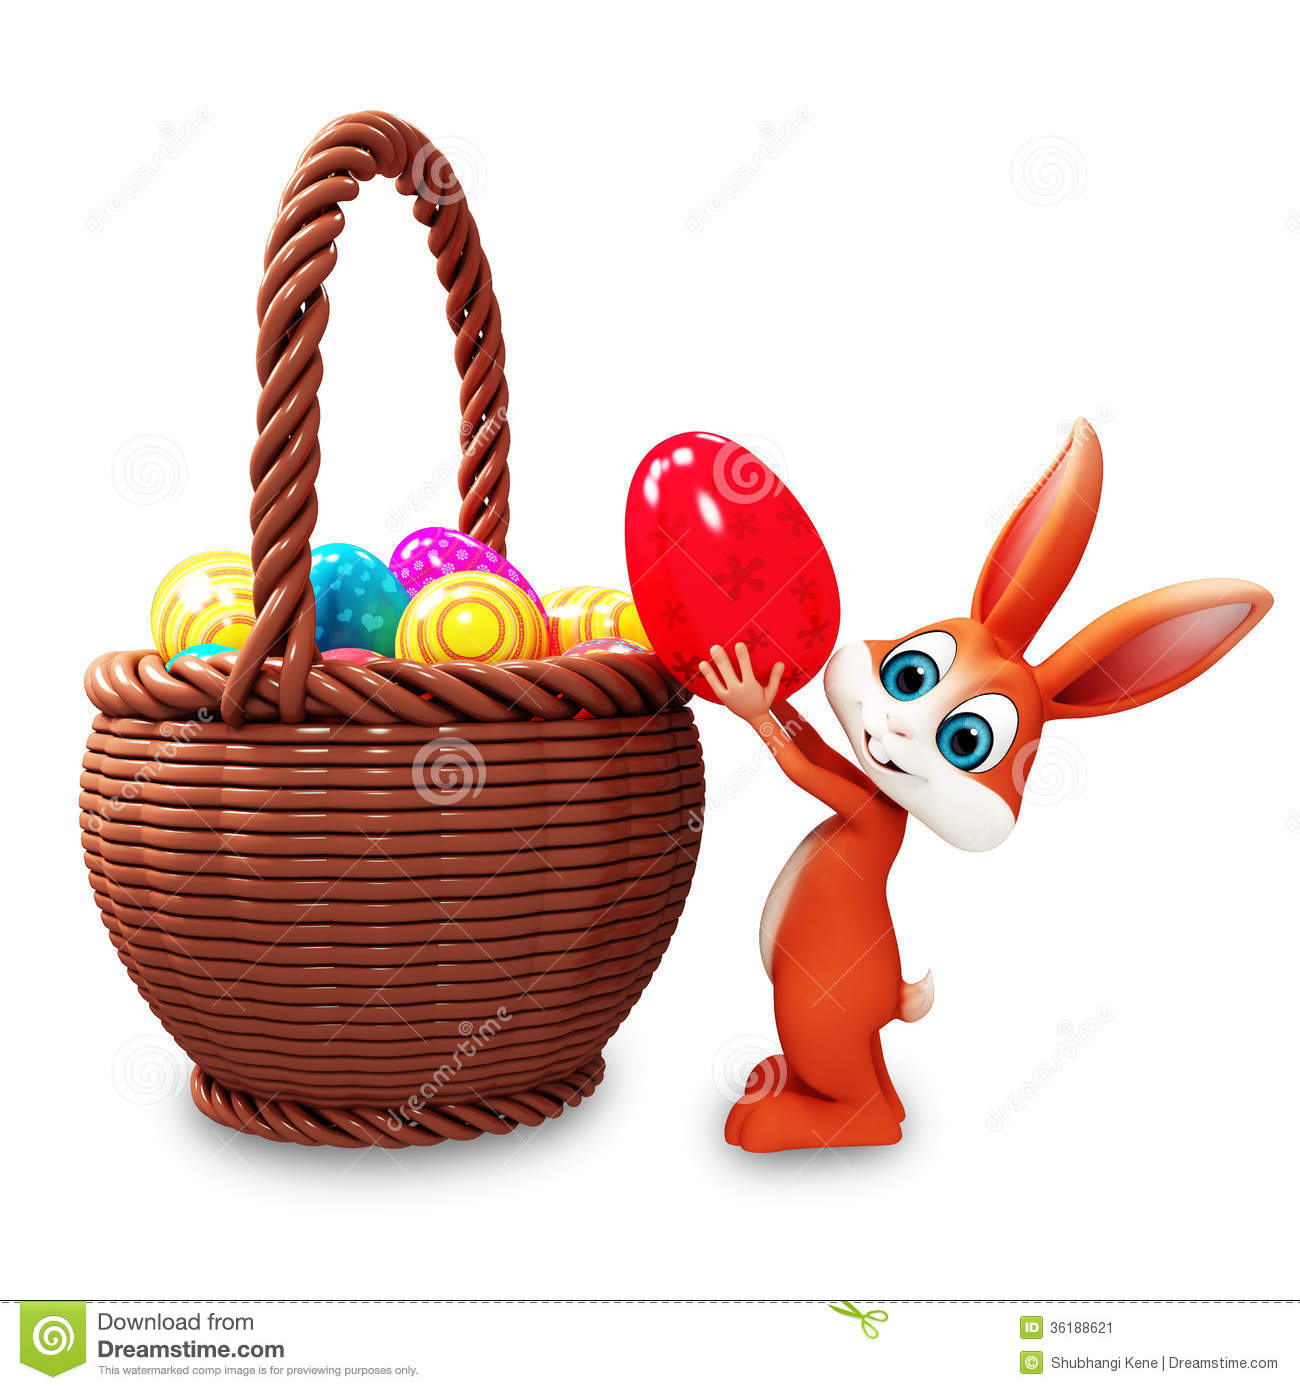 Easter Bunny Pick Up Red Egg Stock Image - Image: 36188621